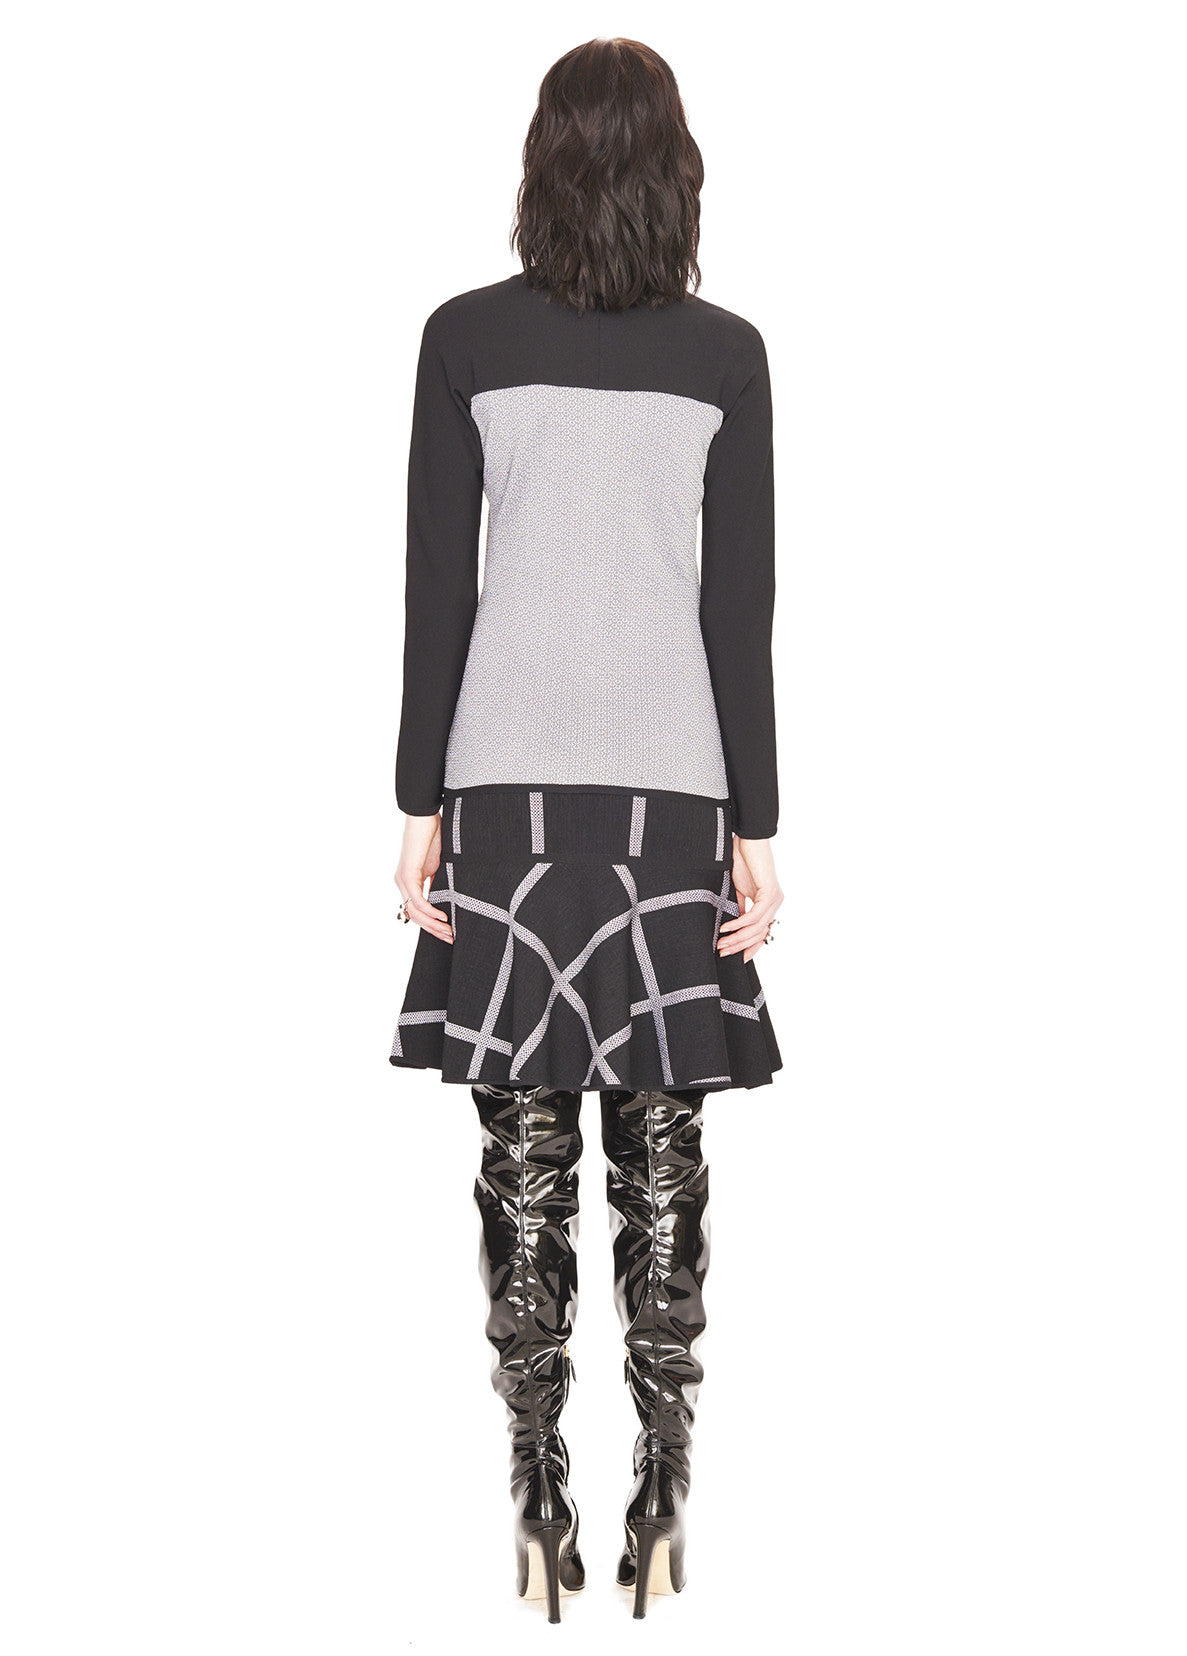 Nicole - Abstract Women's Jacquard Black and White Plaid Skirt